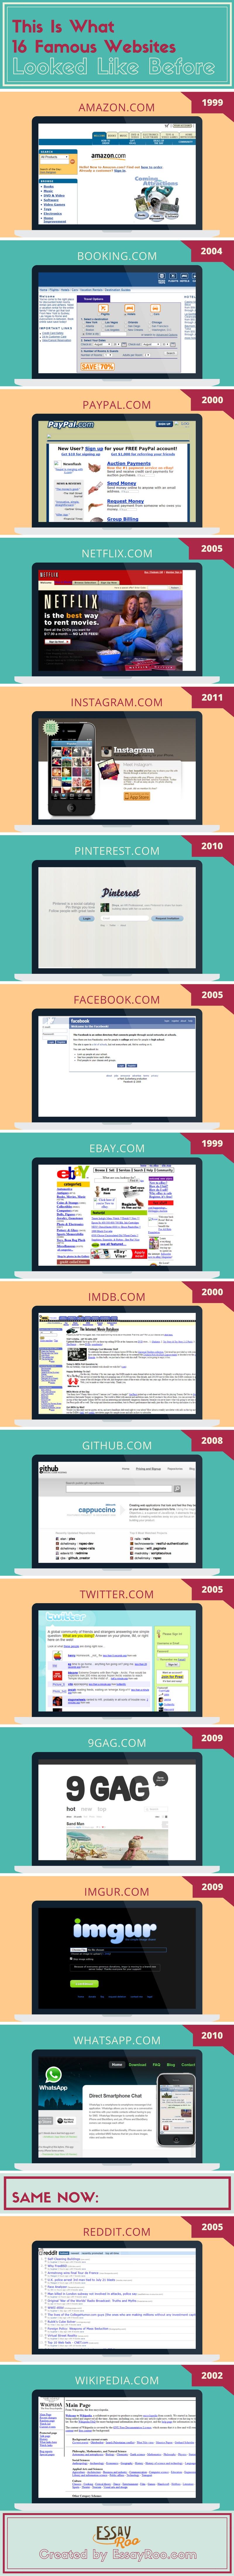 Infographic - This is What 16 Famous Websites Looked Like Before [1]